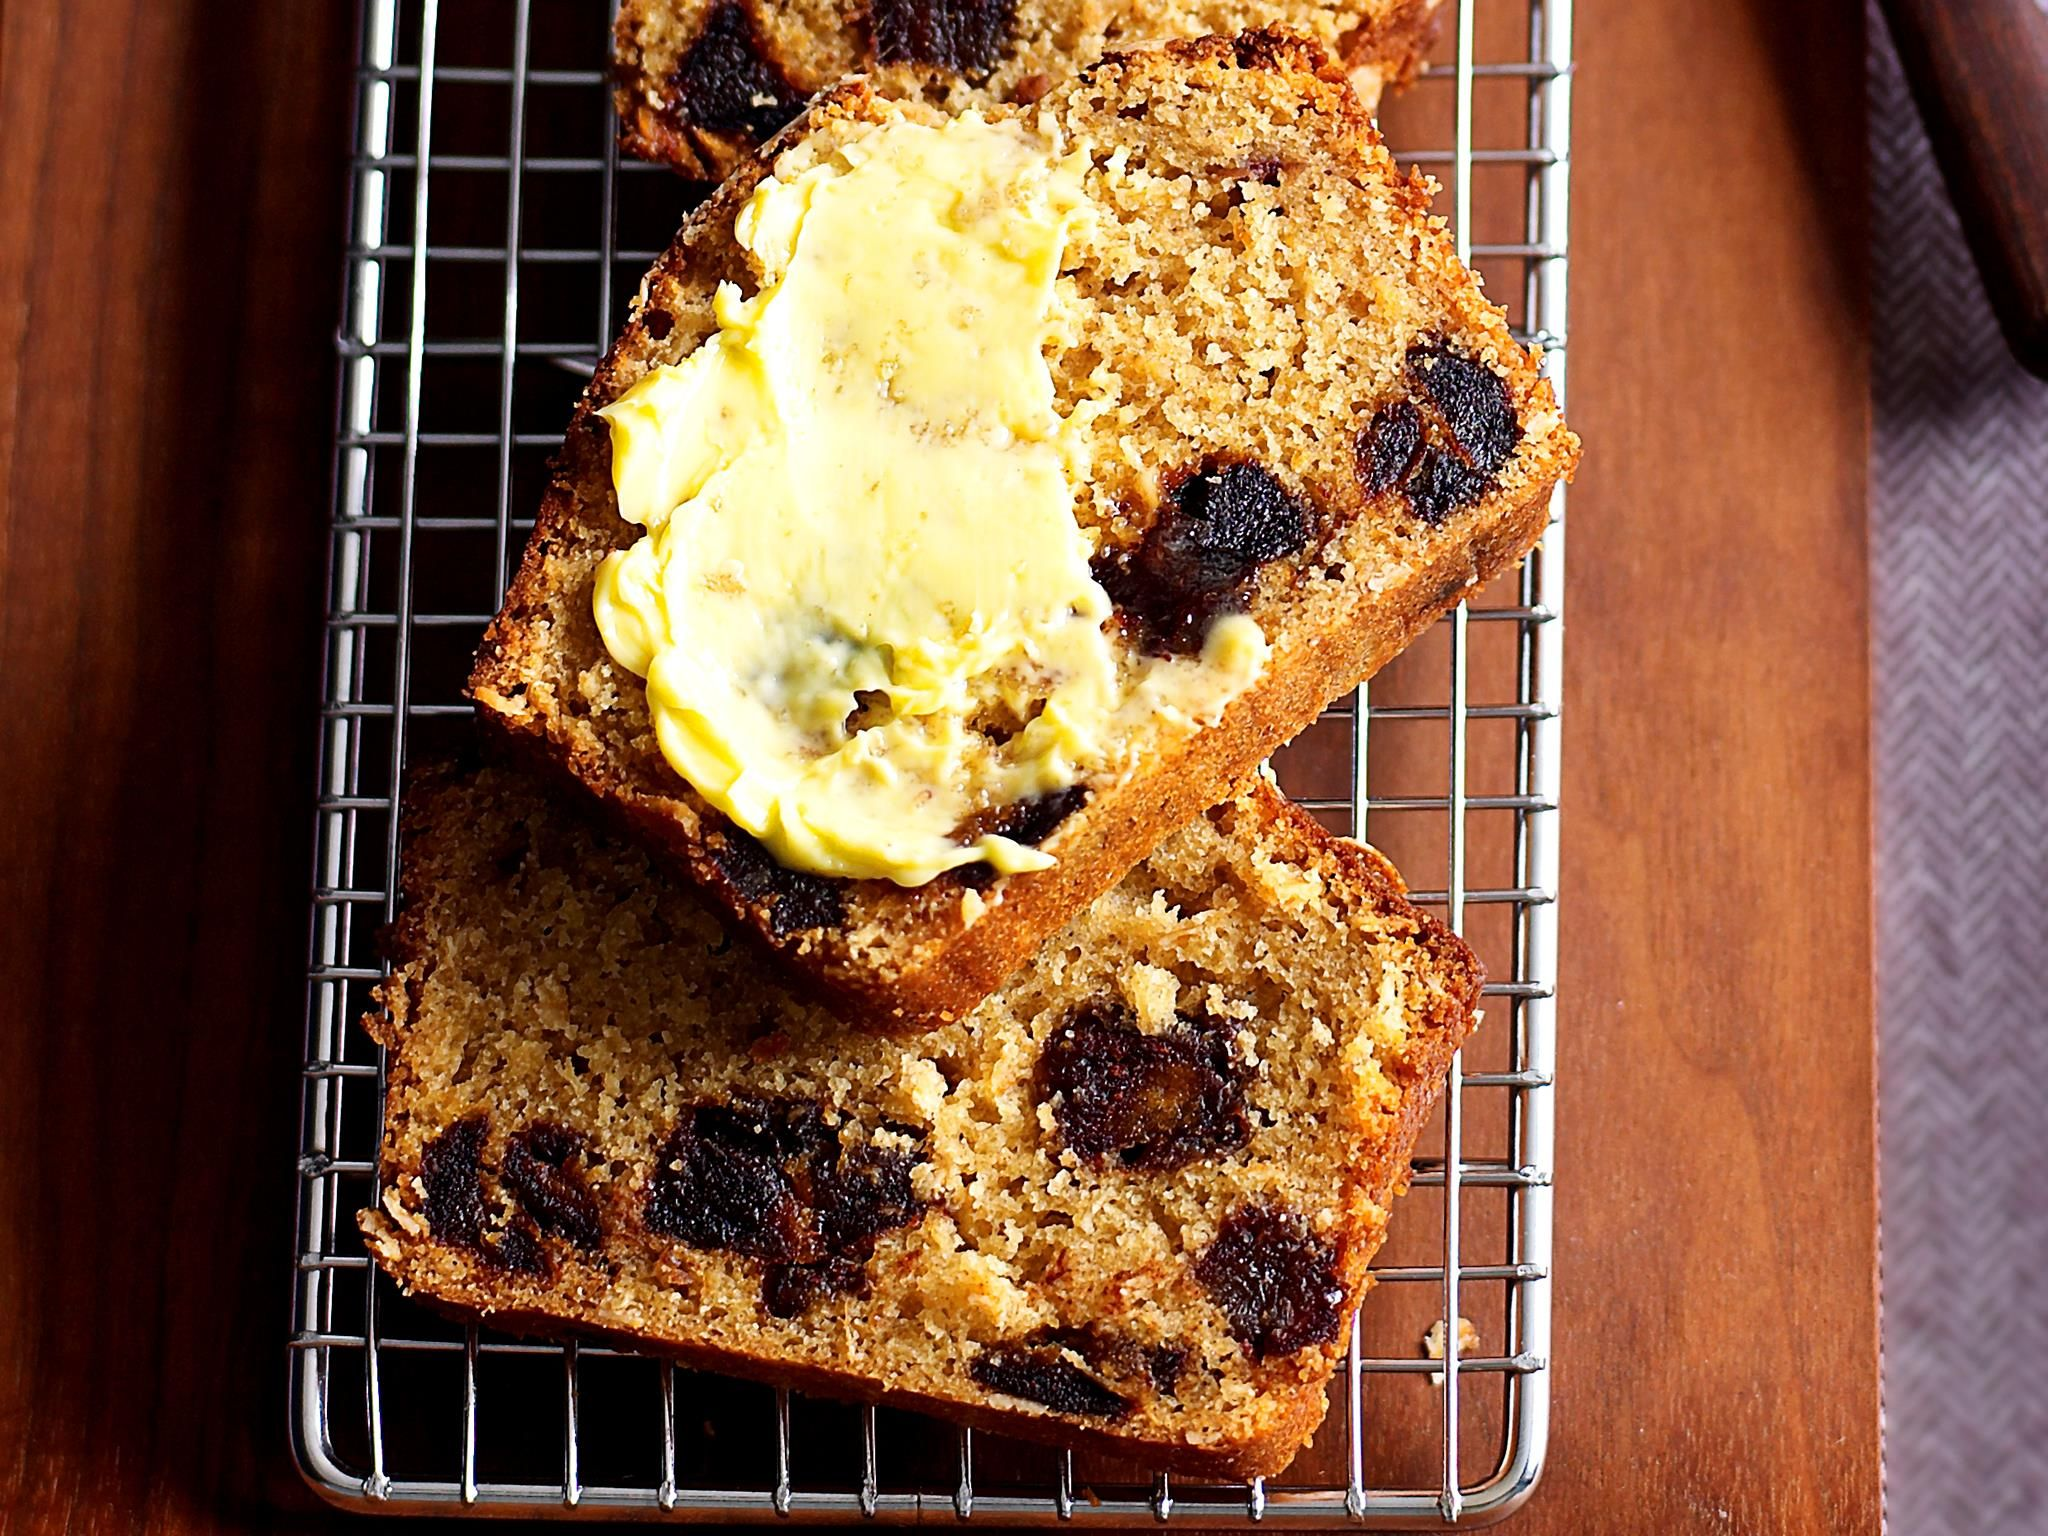 Date and oat loaf recipe date loaf everyday food and dates date and oat loaf oats recipe brought to you by everyday food forumfinder Images